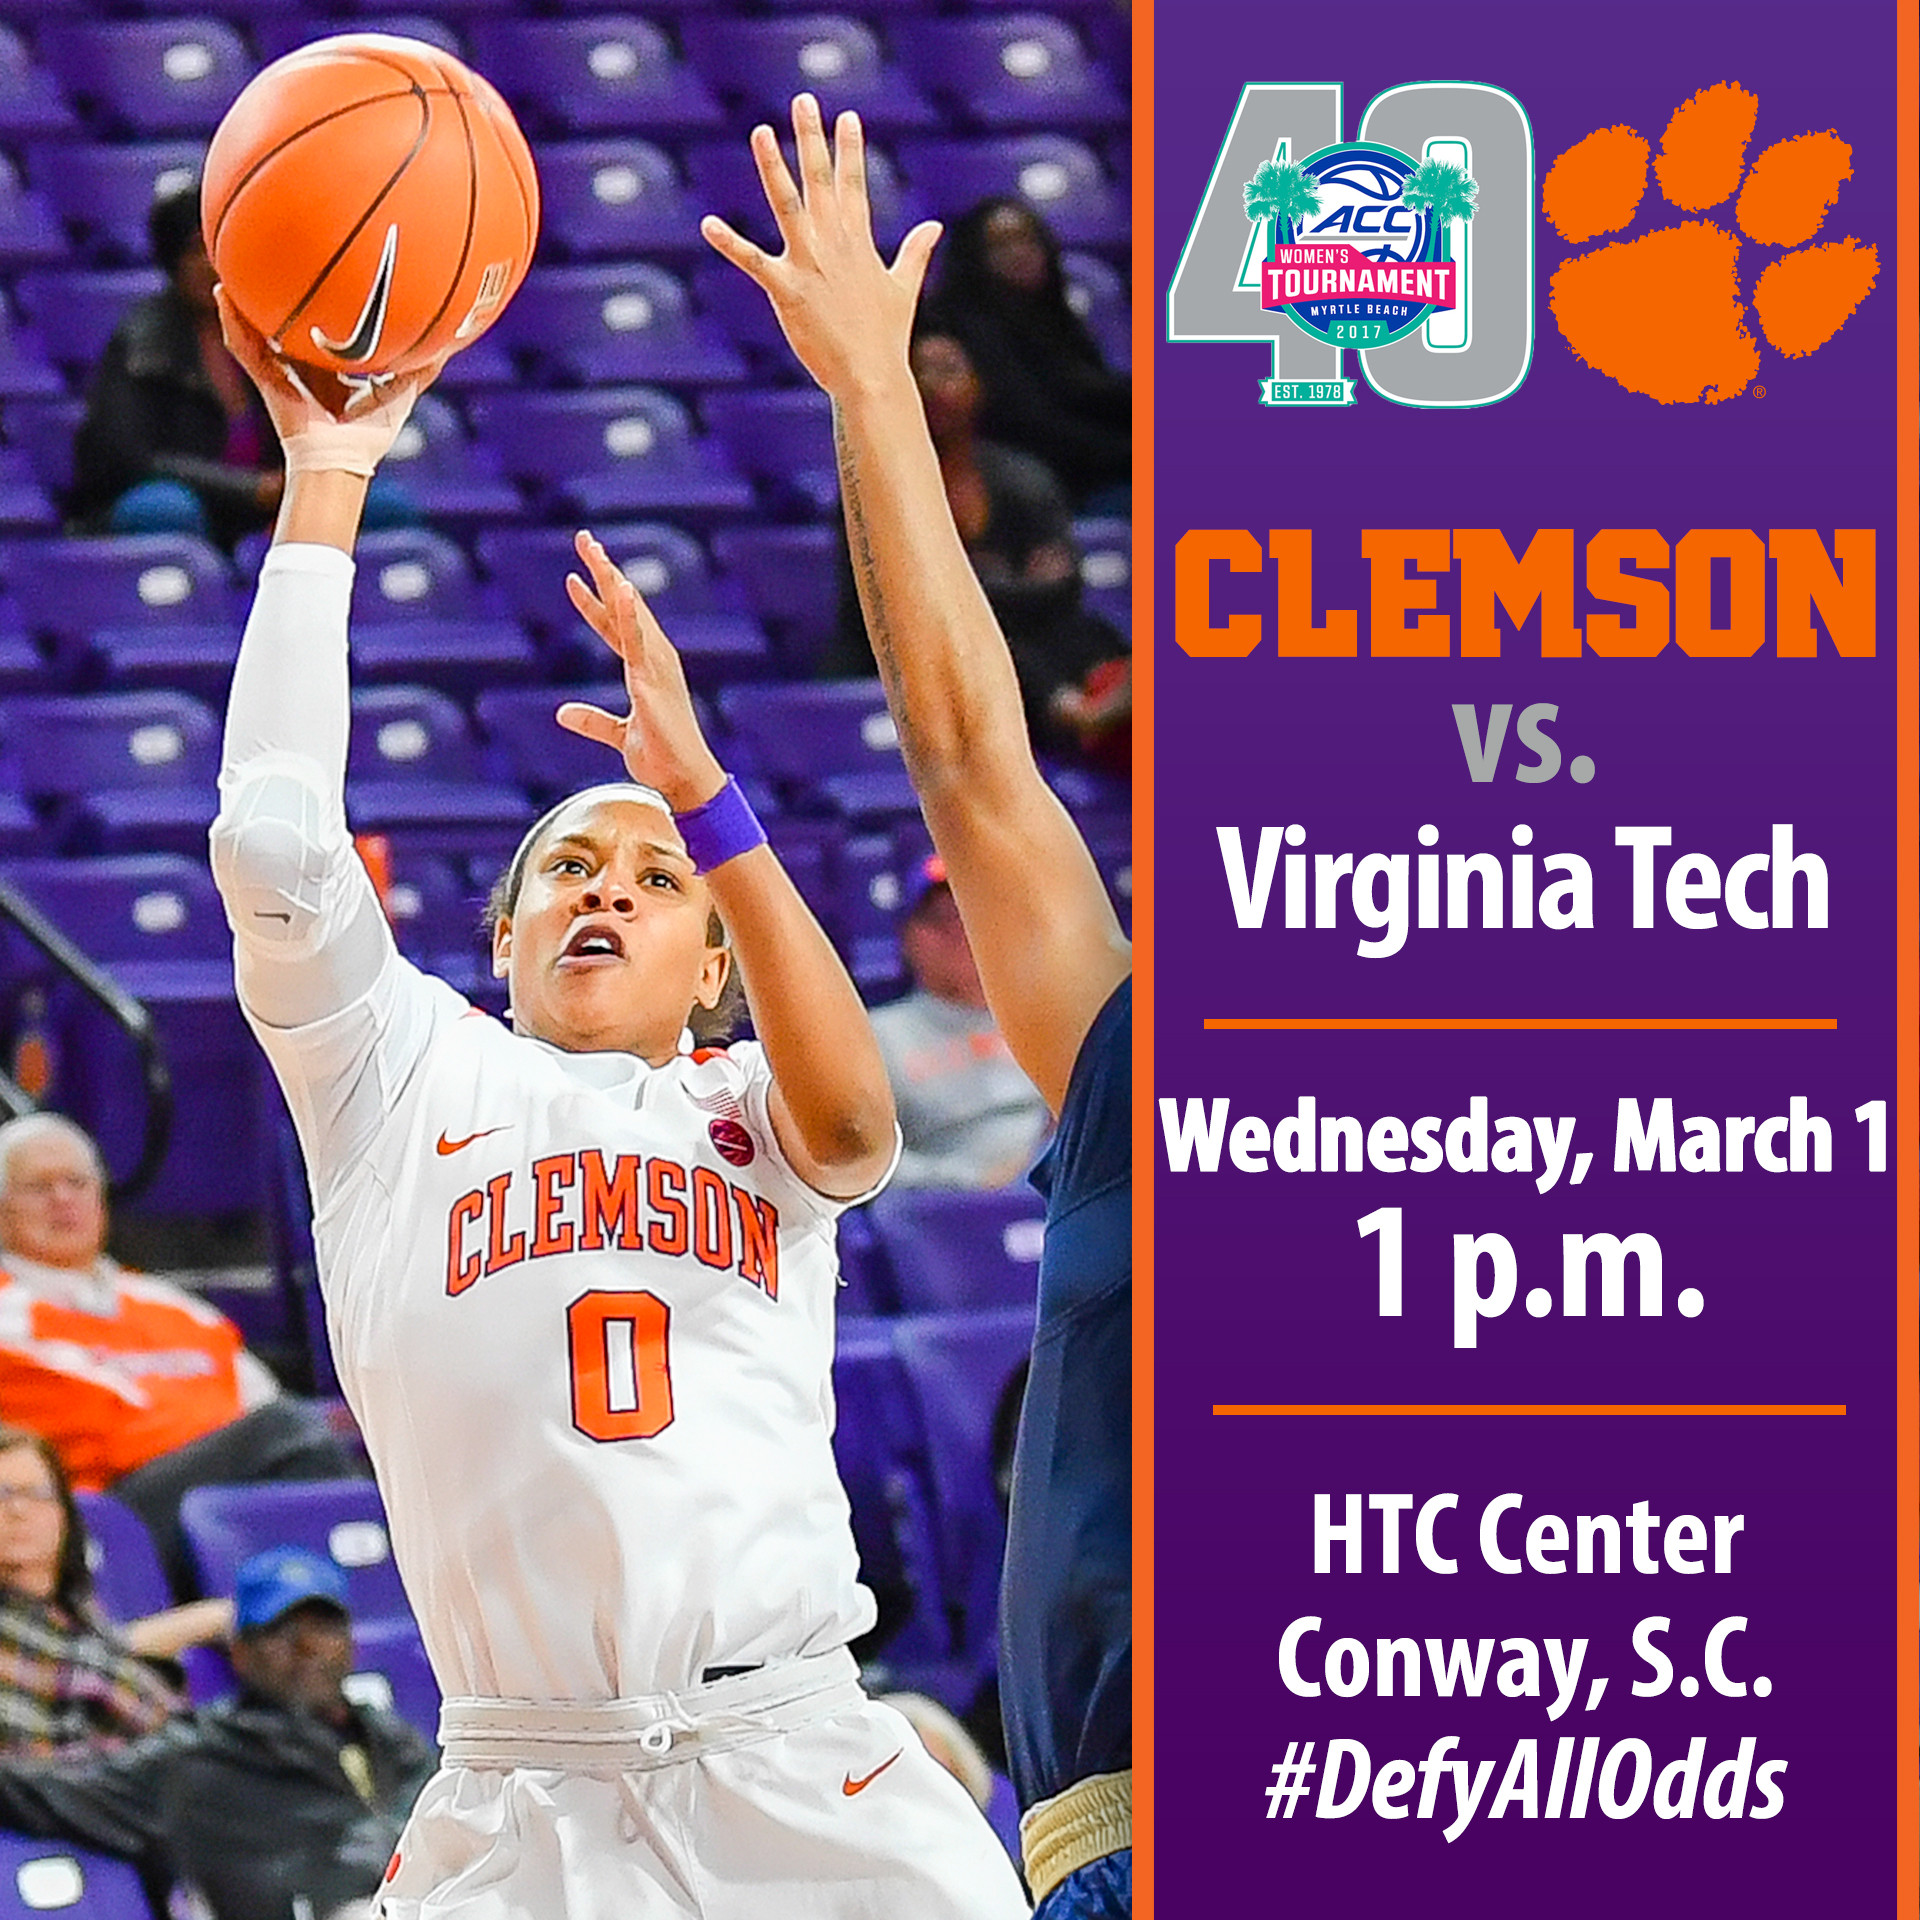 Clemson Faces Virginia Tech in ACC Tournament First Round Wednesday